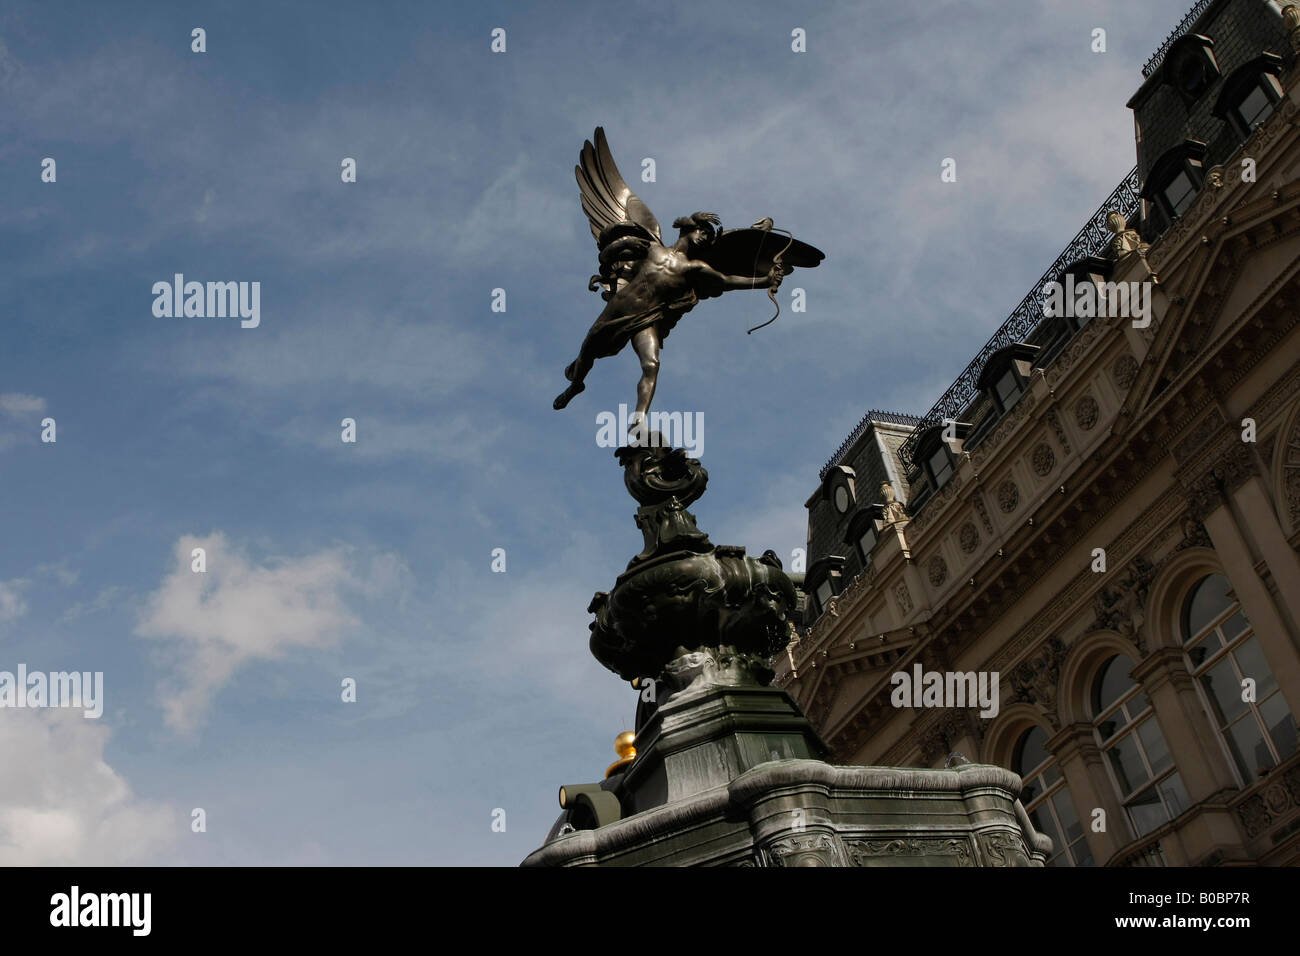 Eros statue in Piccadilly Circus London with the famous Lilywhites store in background - Stock Image